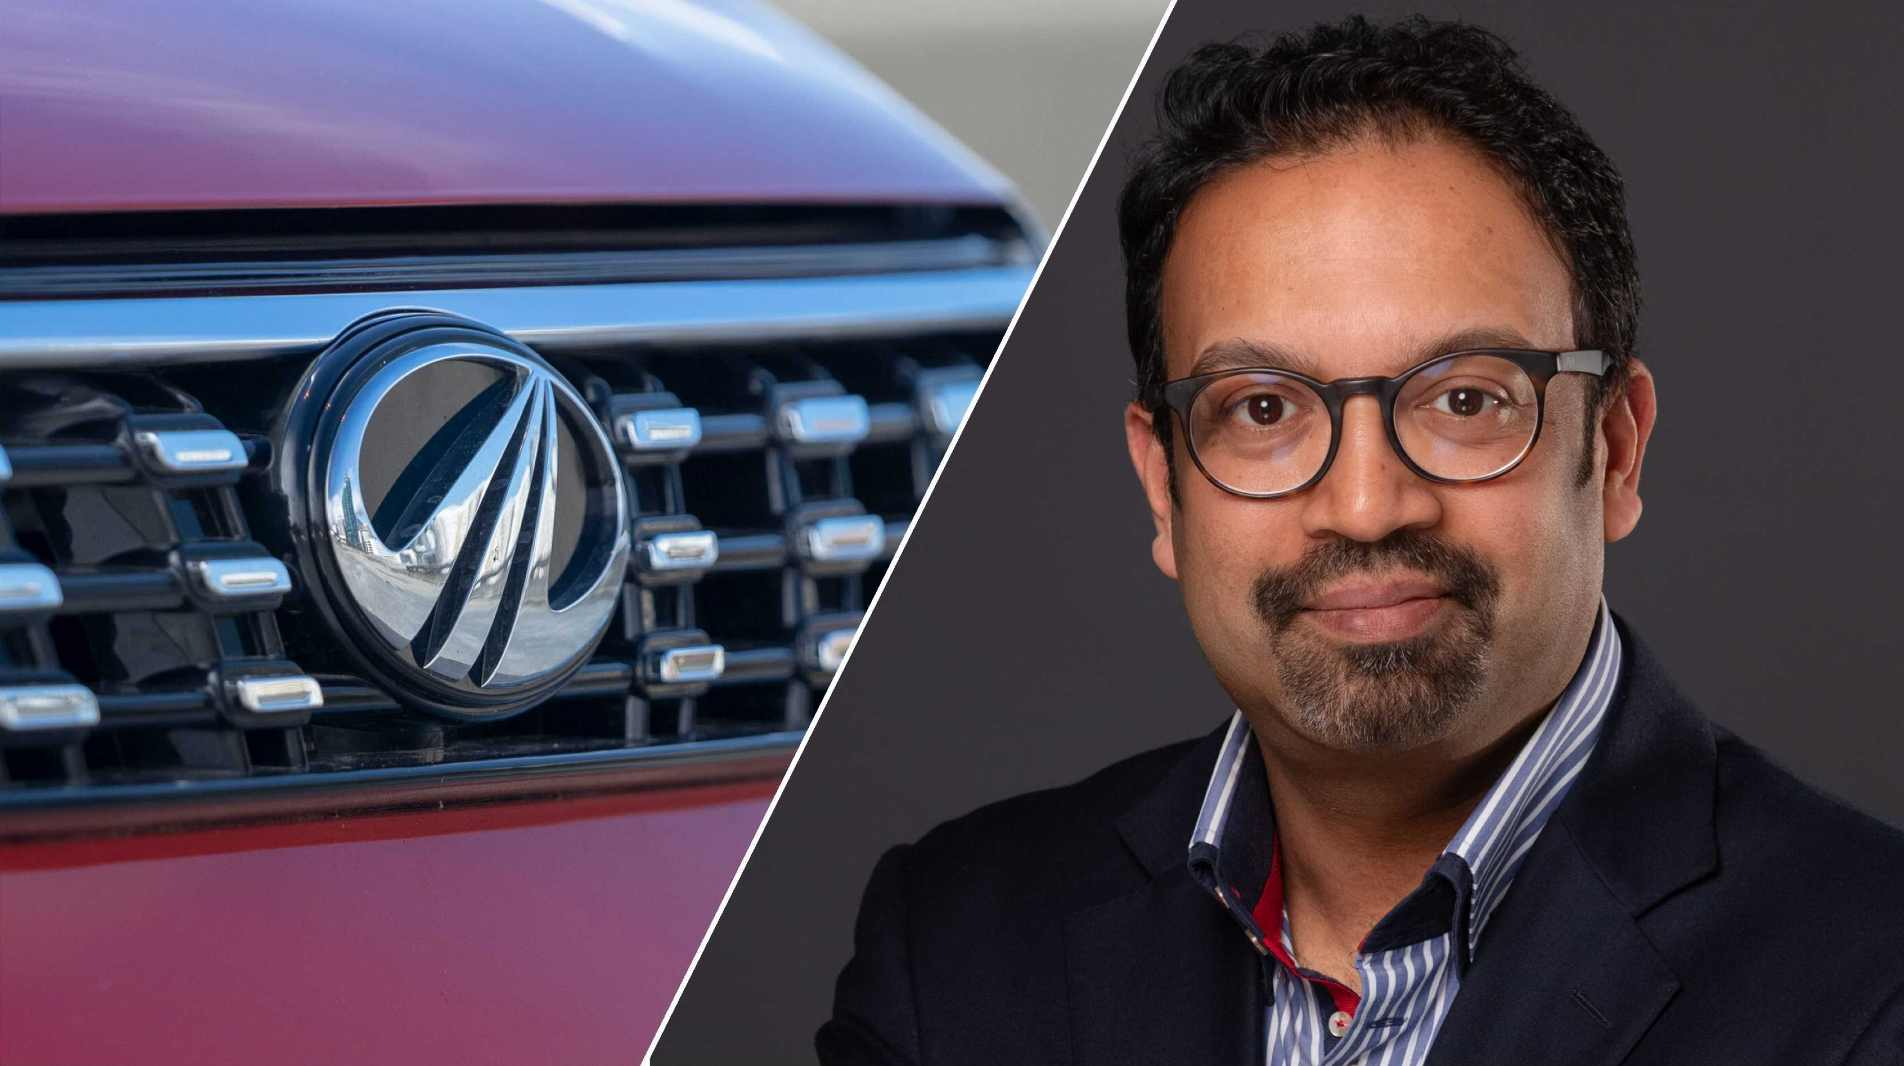 Pratap Bose will oversee design for Mahindra's EVs, SUVs, commercial vehicles and two-wheelers as well. Image: Mahindra/Tech2